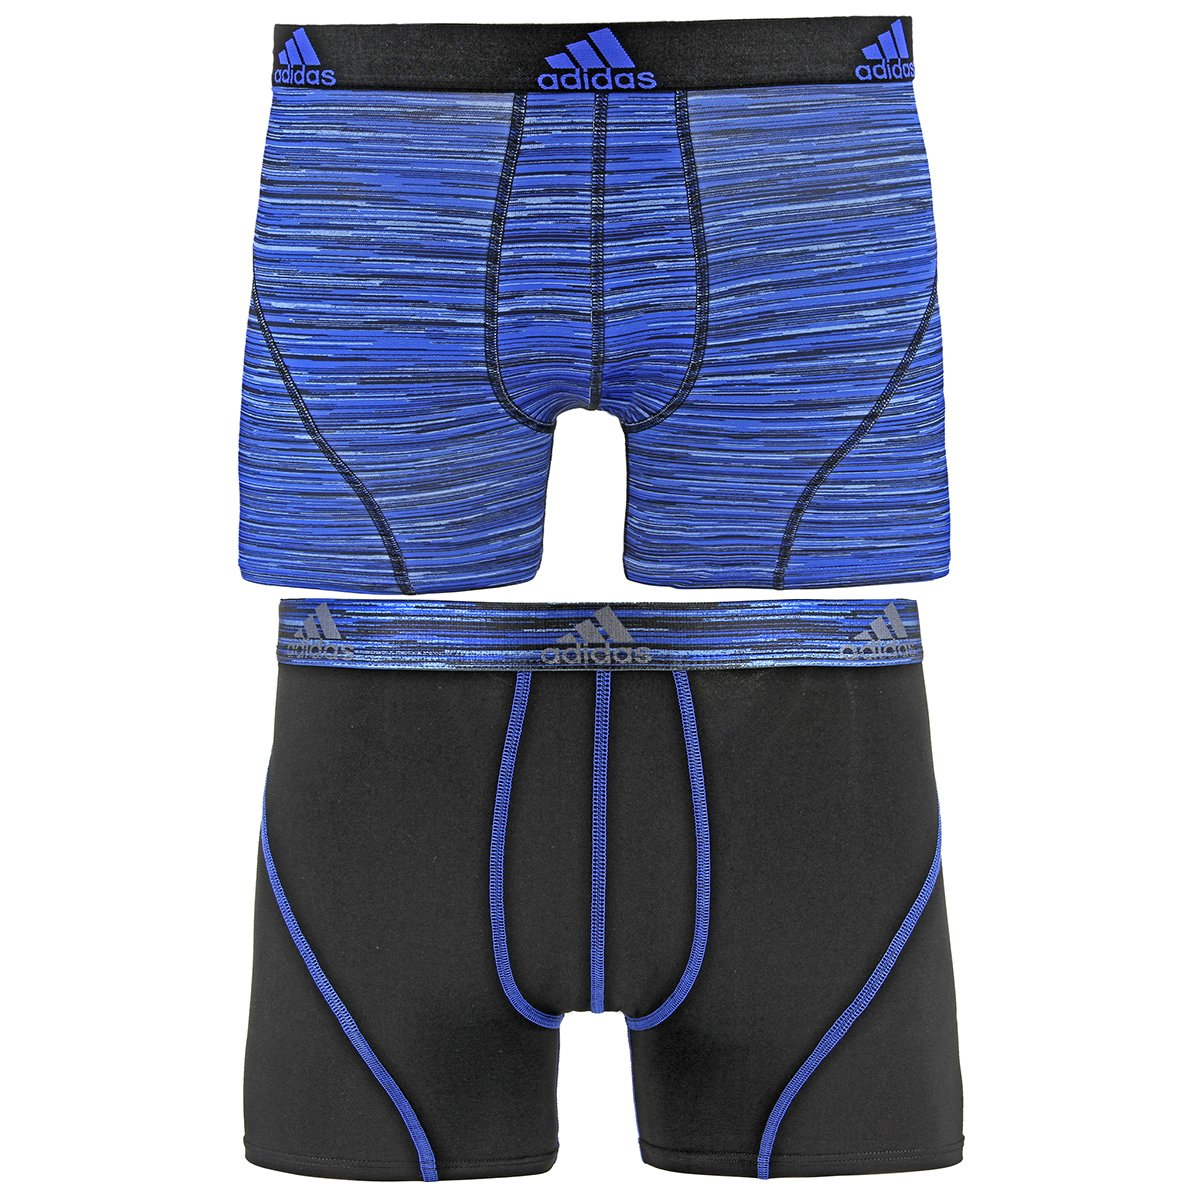 47d36d42c1f9 Amazon.com  adidas Men s Sport Performance Climalite Trunk Underwear  (2-Pack)  Sports   Outdoors